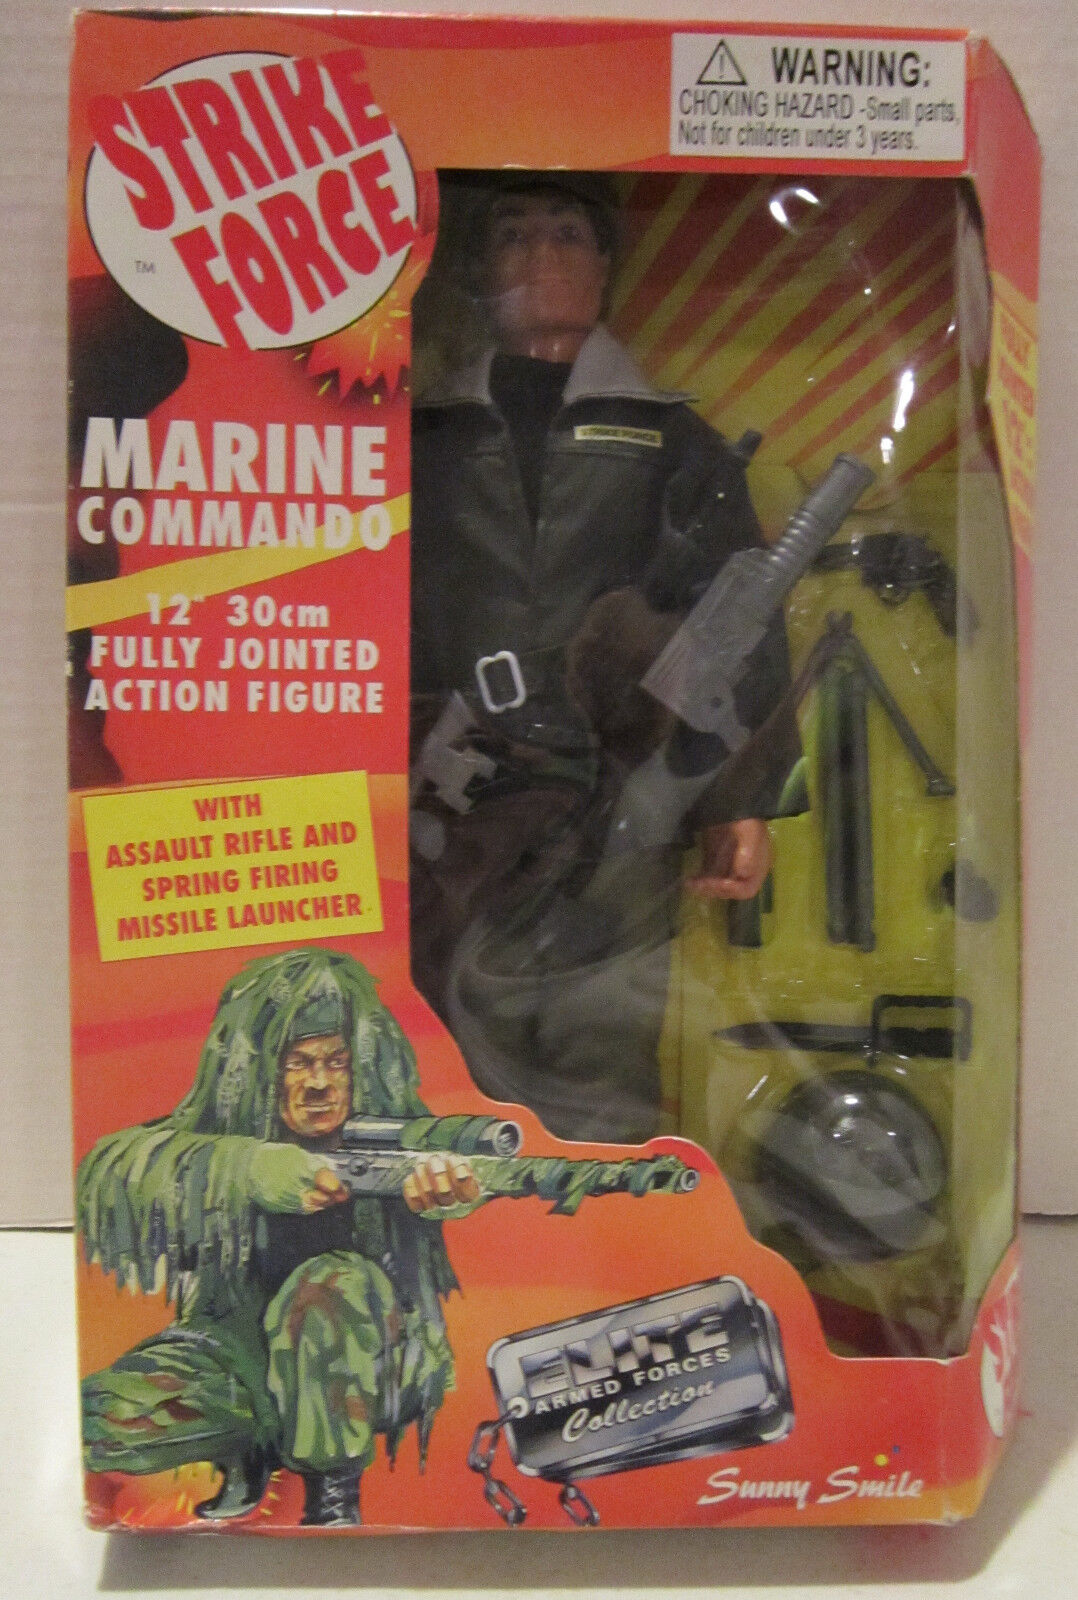 Strike Force Marine Commando 12   30cm Fully Jointed Action Figure - New